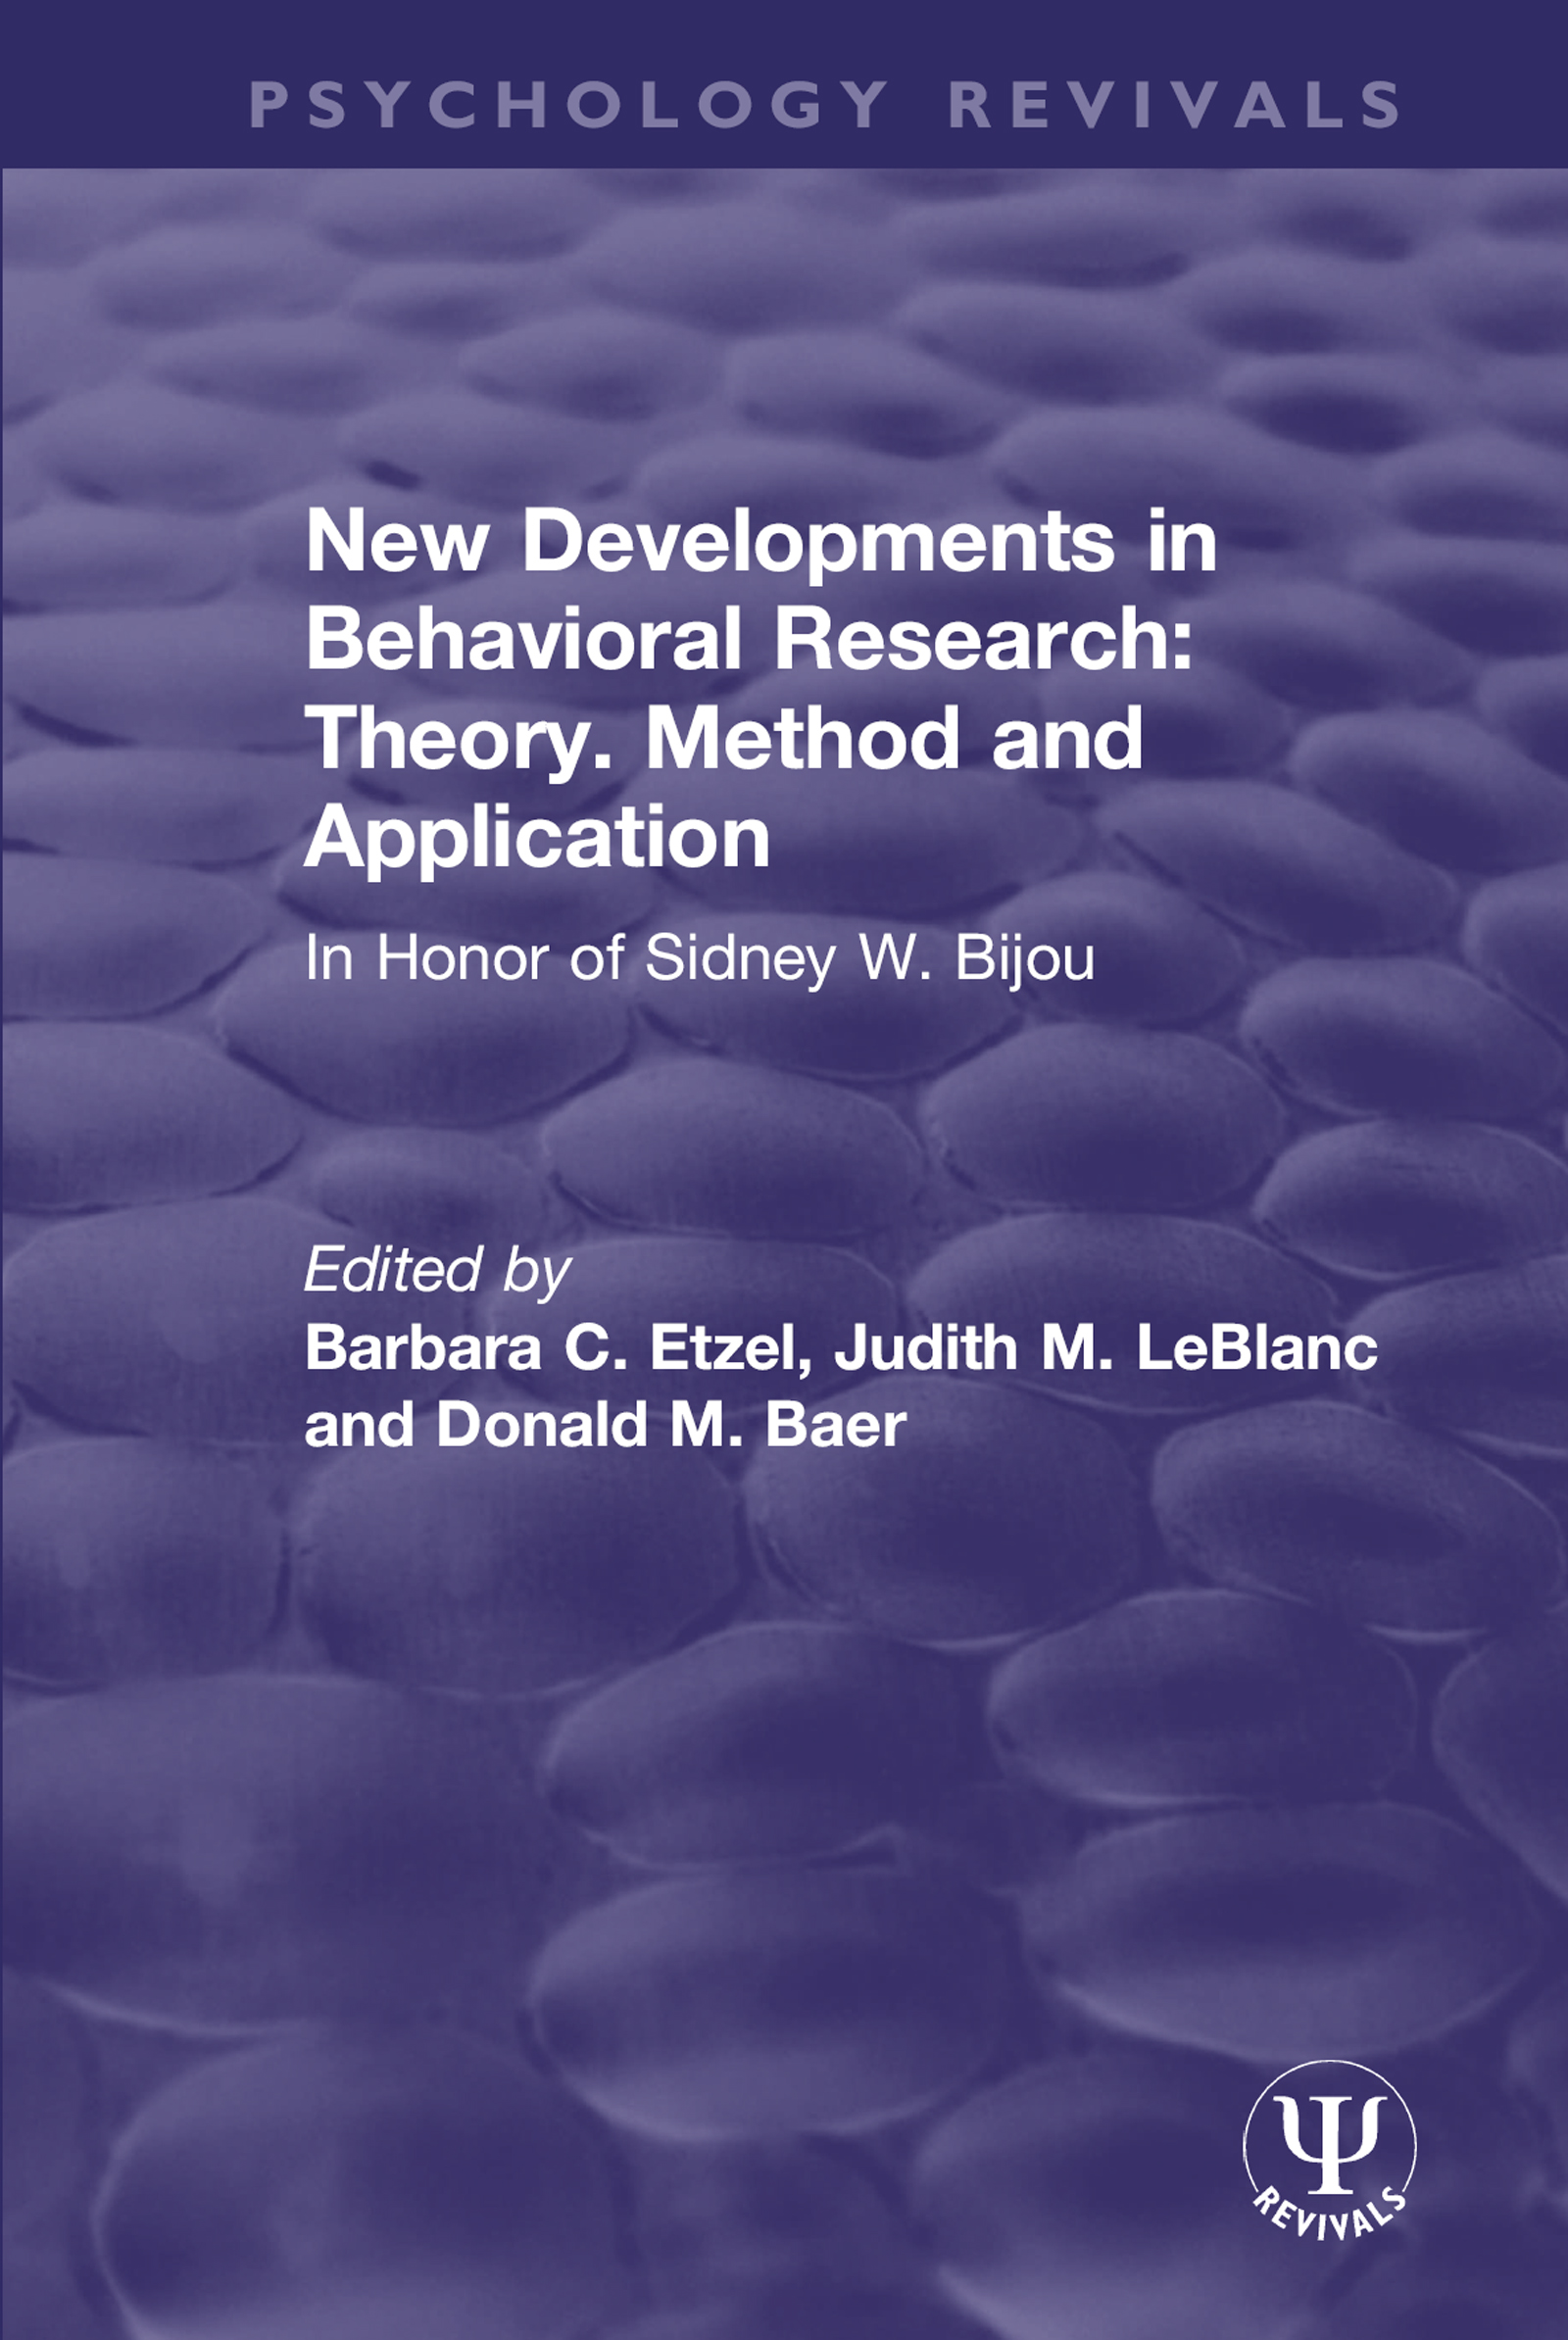 New Developments in Behavioral Research: Theory, Method and Application